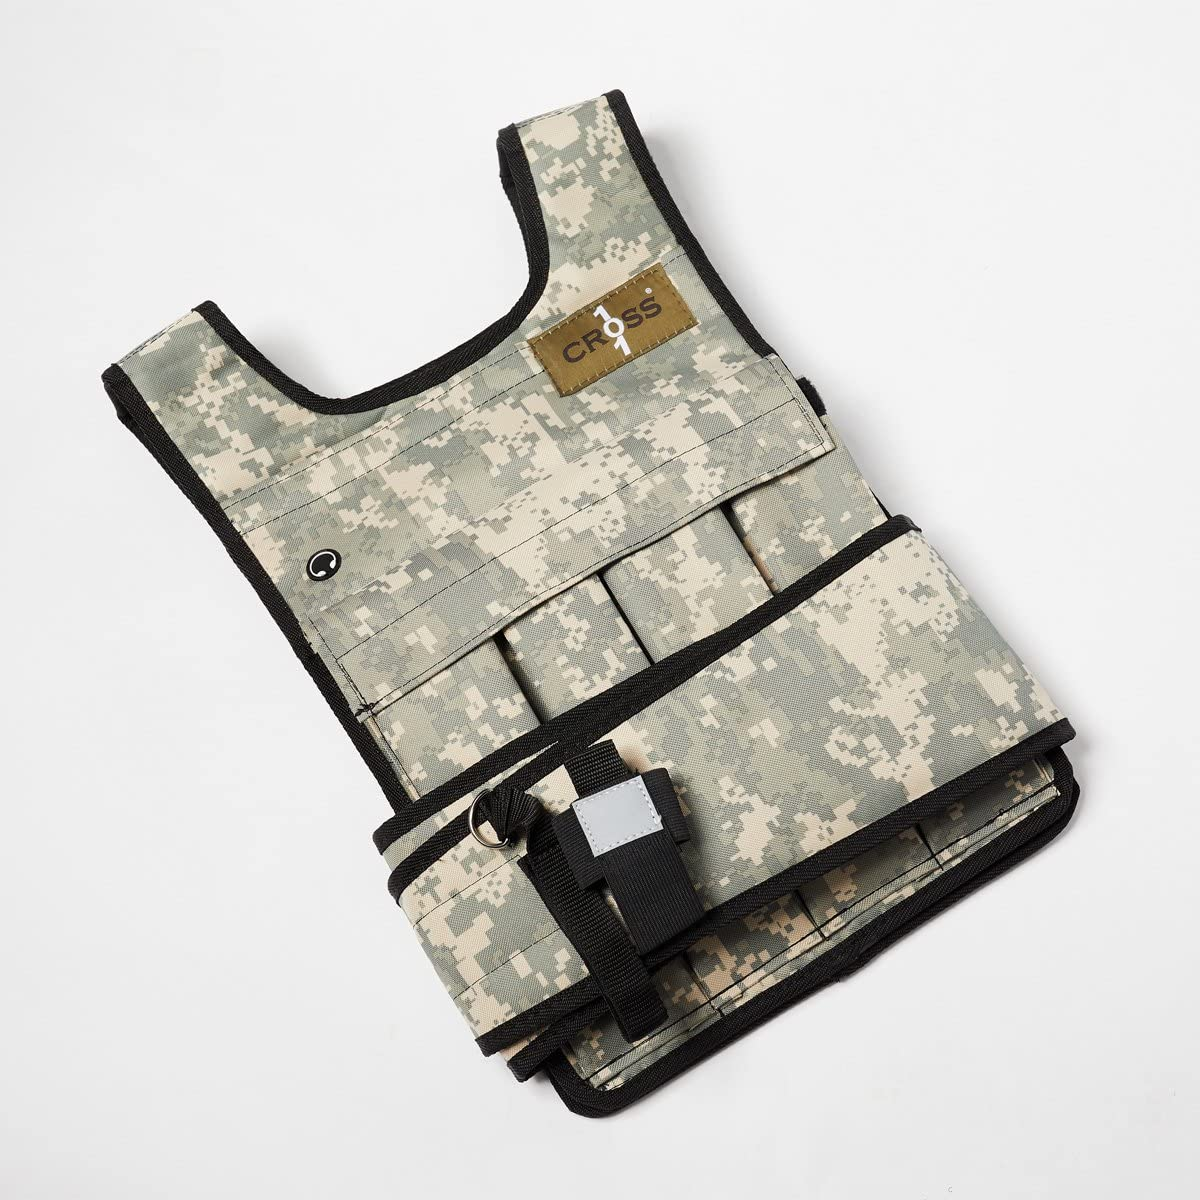 CROSS101 20lbs Camouflage Adjustable Weighted Vest with Phone Pocket Water Bottle Holder